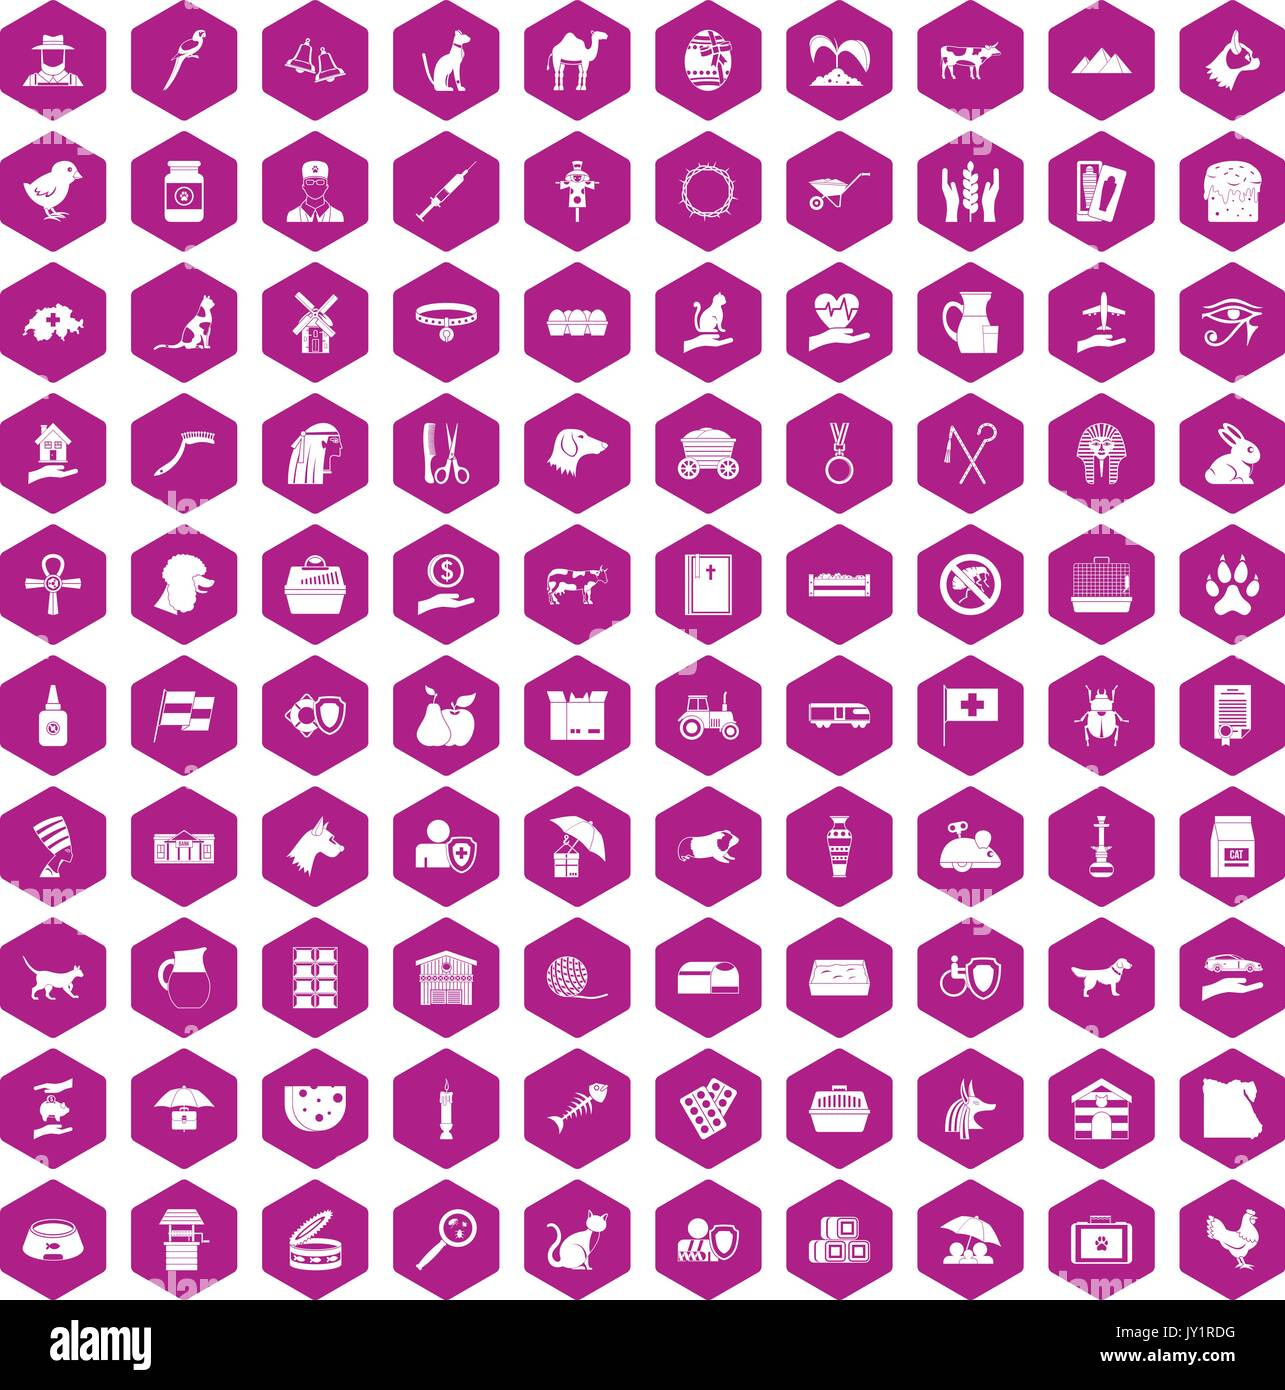 100 pets icons hexagon violet - Stock Image